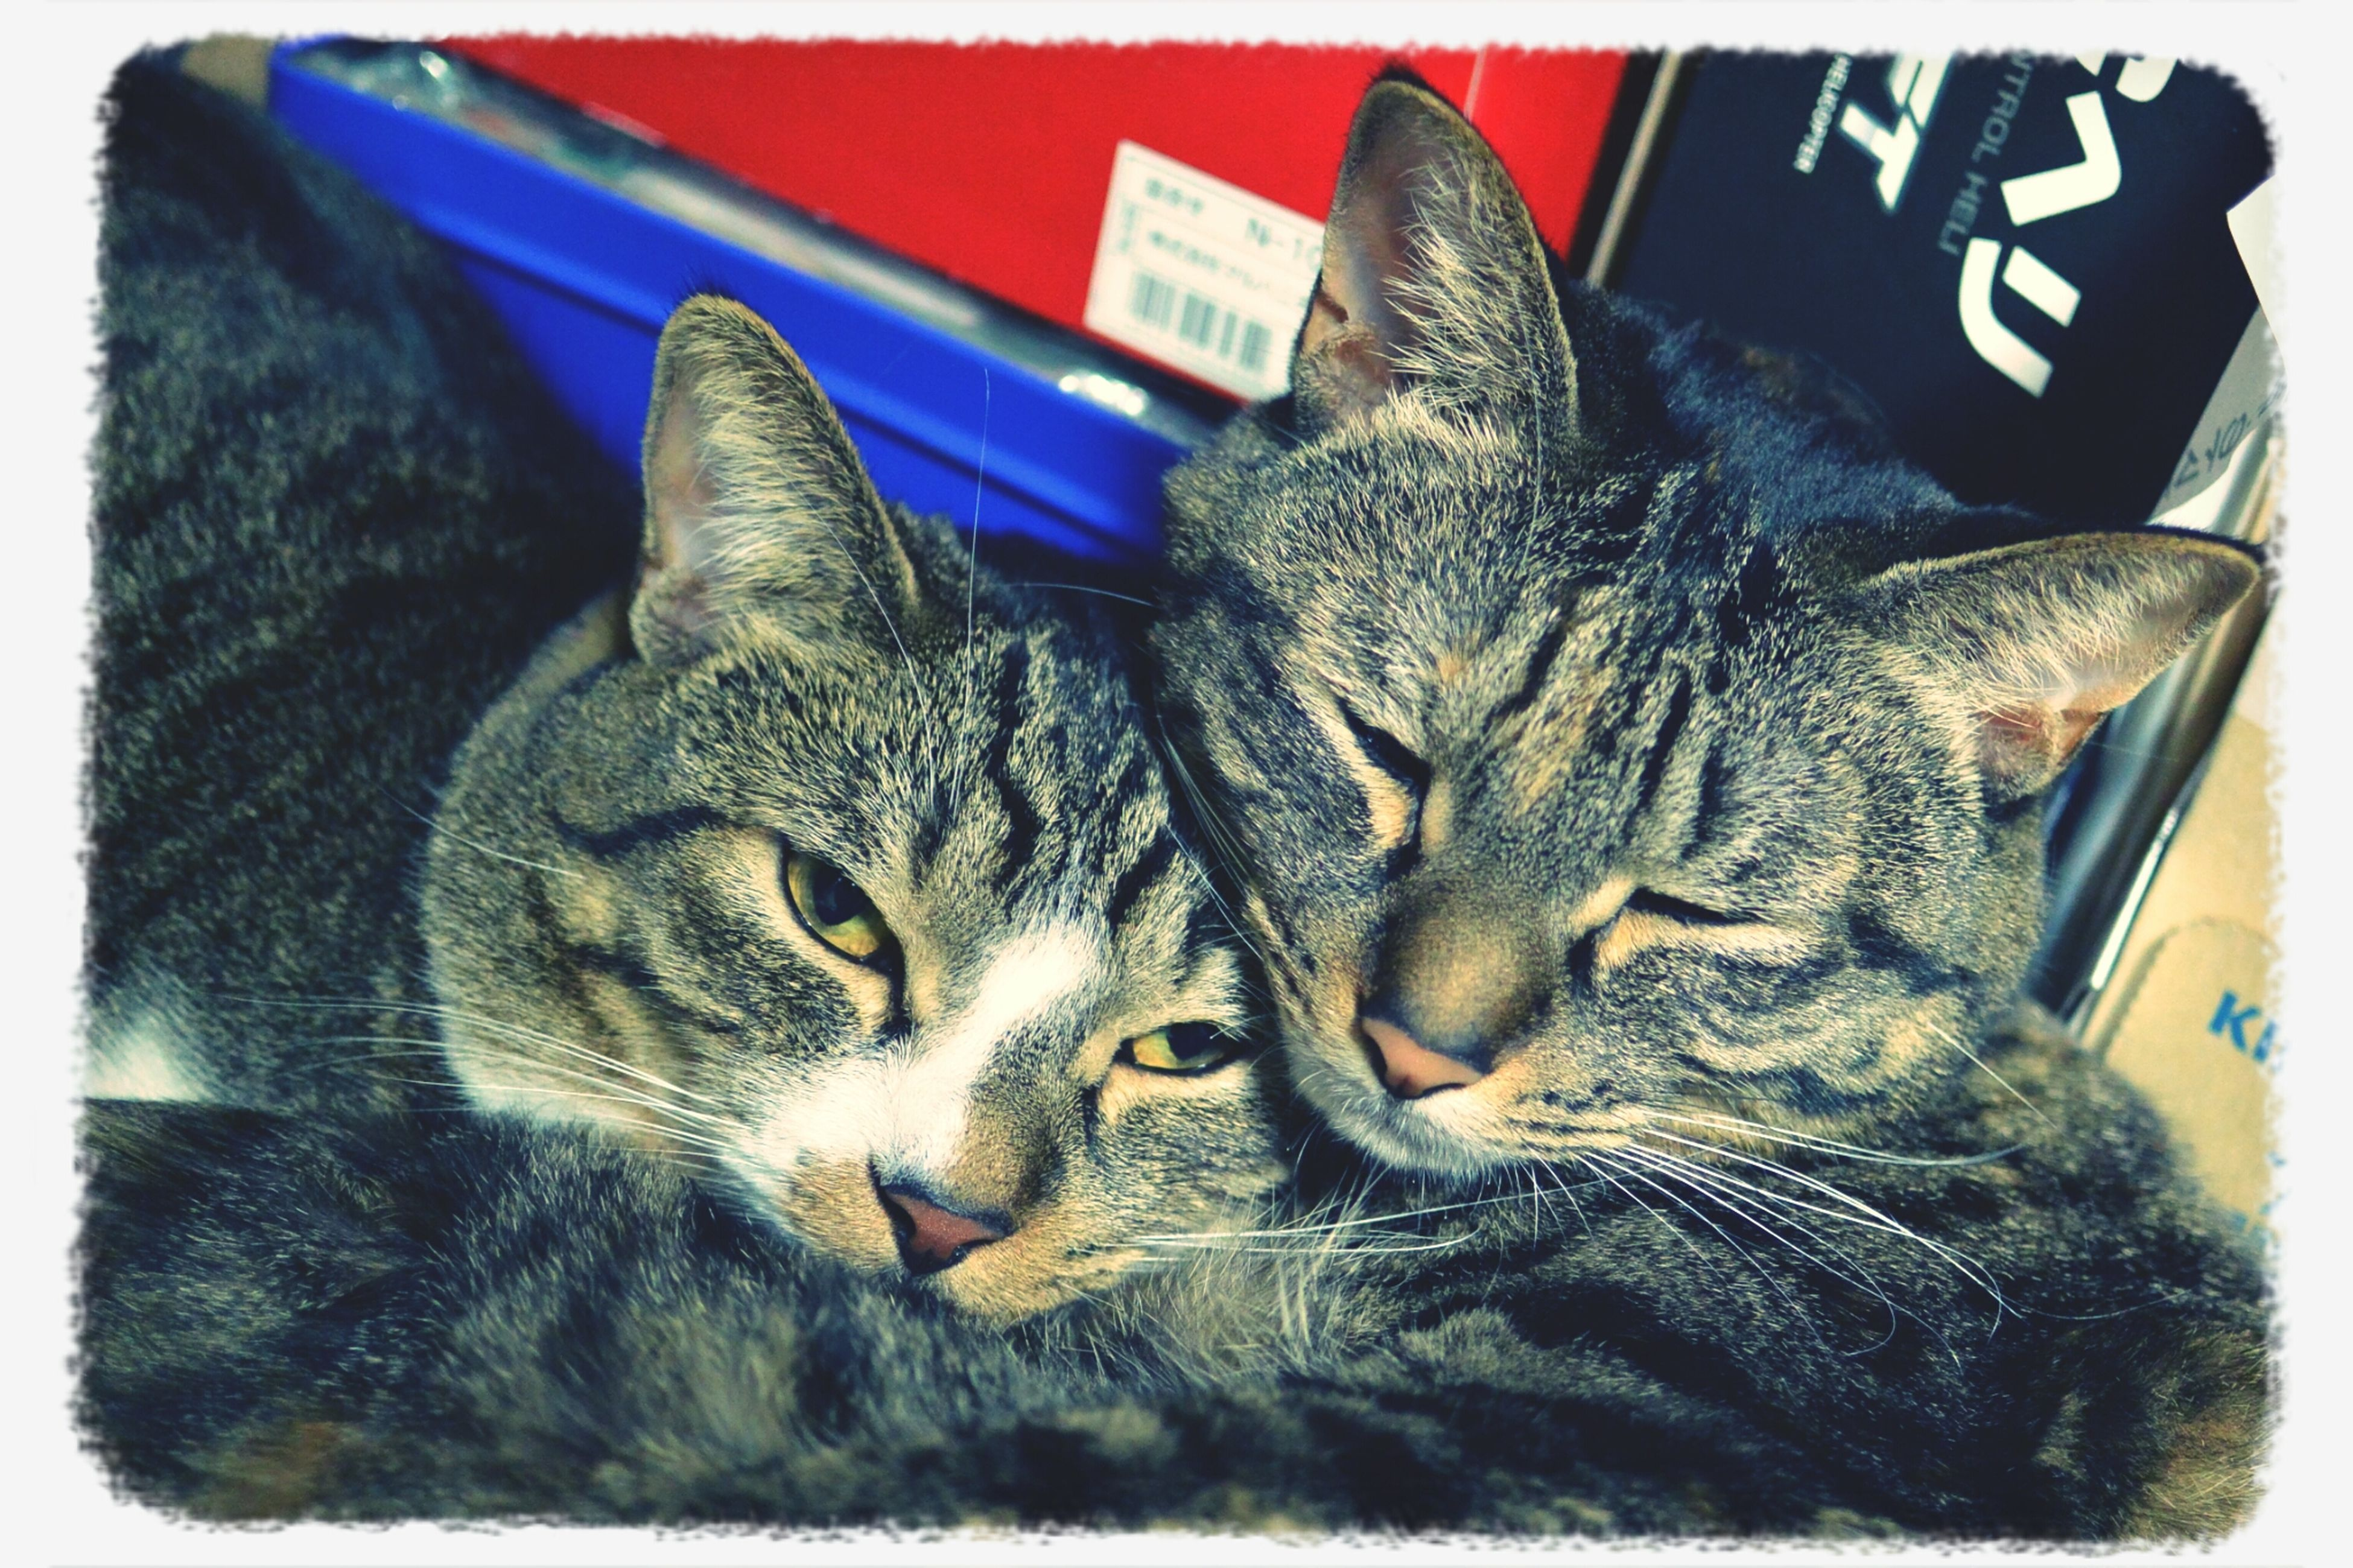 animal themes, one animal, domestic cat, mammal, cat, pets, feline, domestic animals, transfer print, auto post production filter, whisker, relaxation, lying down, close-up, resting, sleeping, indoors, two animals, no people, animal head